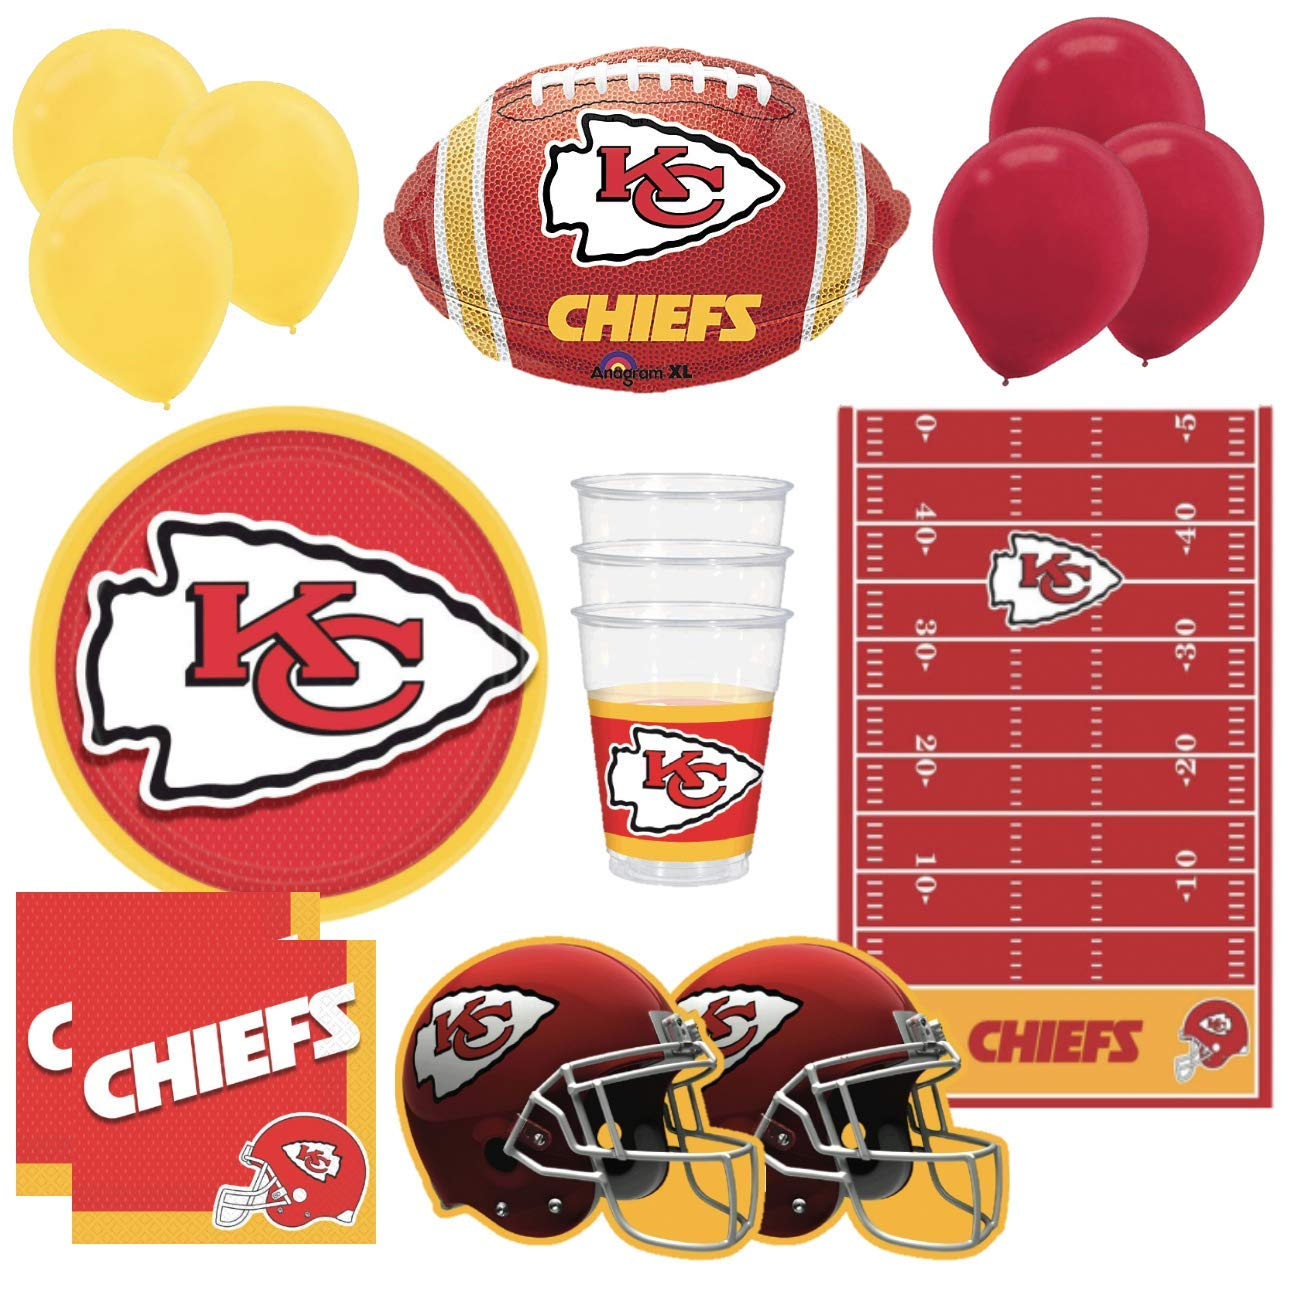 Chiefs Football Party Supplies & Decorations Pack Paper Plates, Napkins, Plastic Cups, Helmet Cutouts, Red & Yellow Balloons, Kansas City Football Shaped Balloon, Table Cover